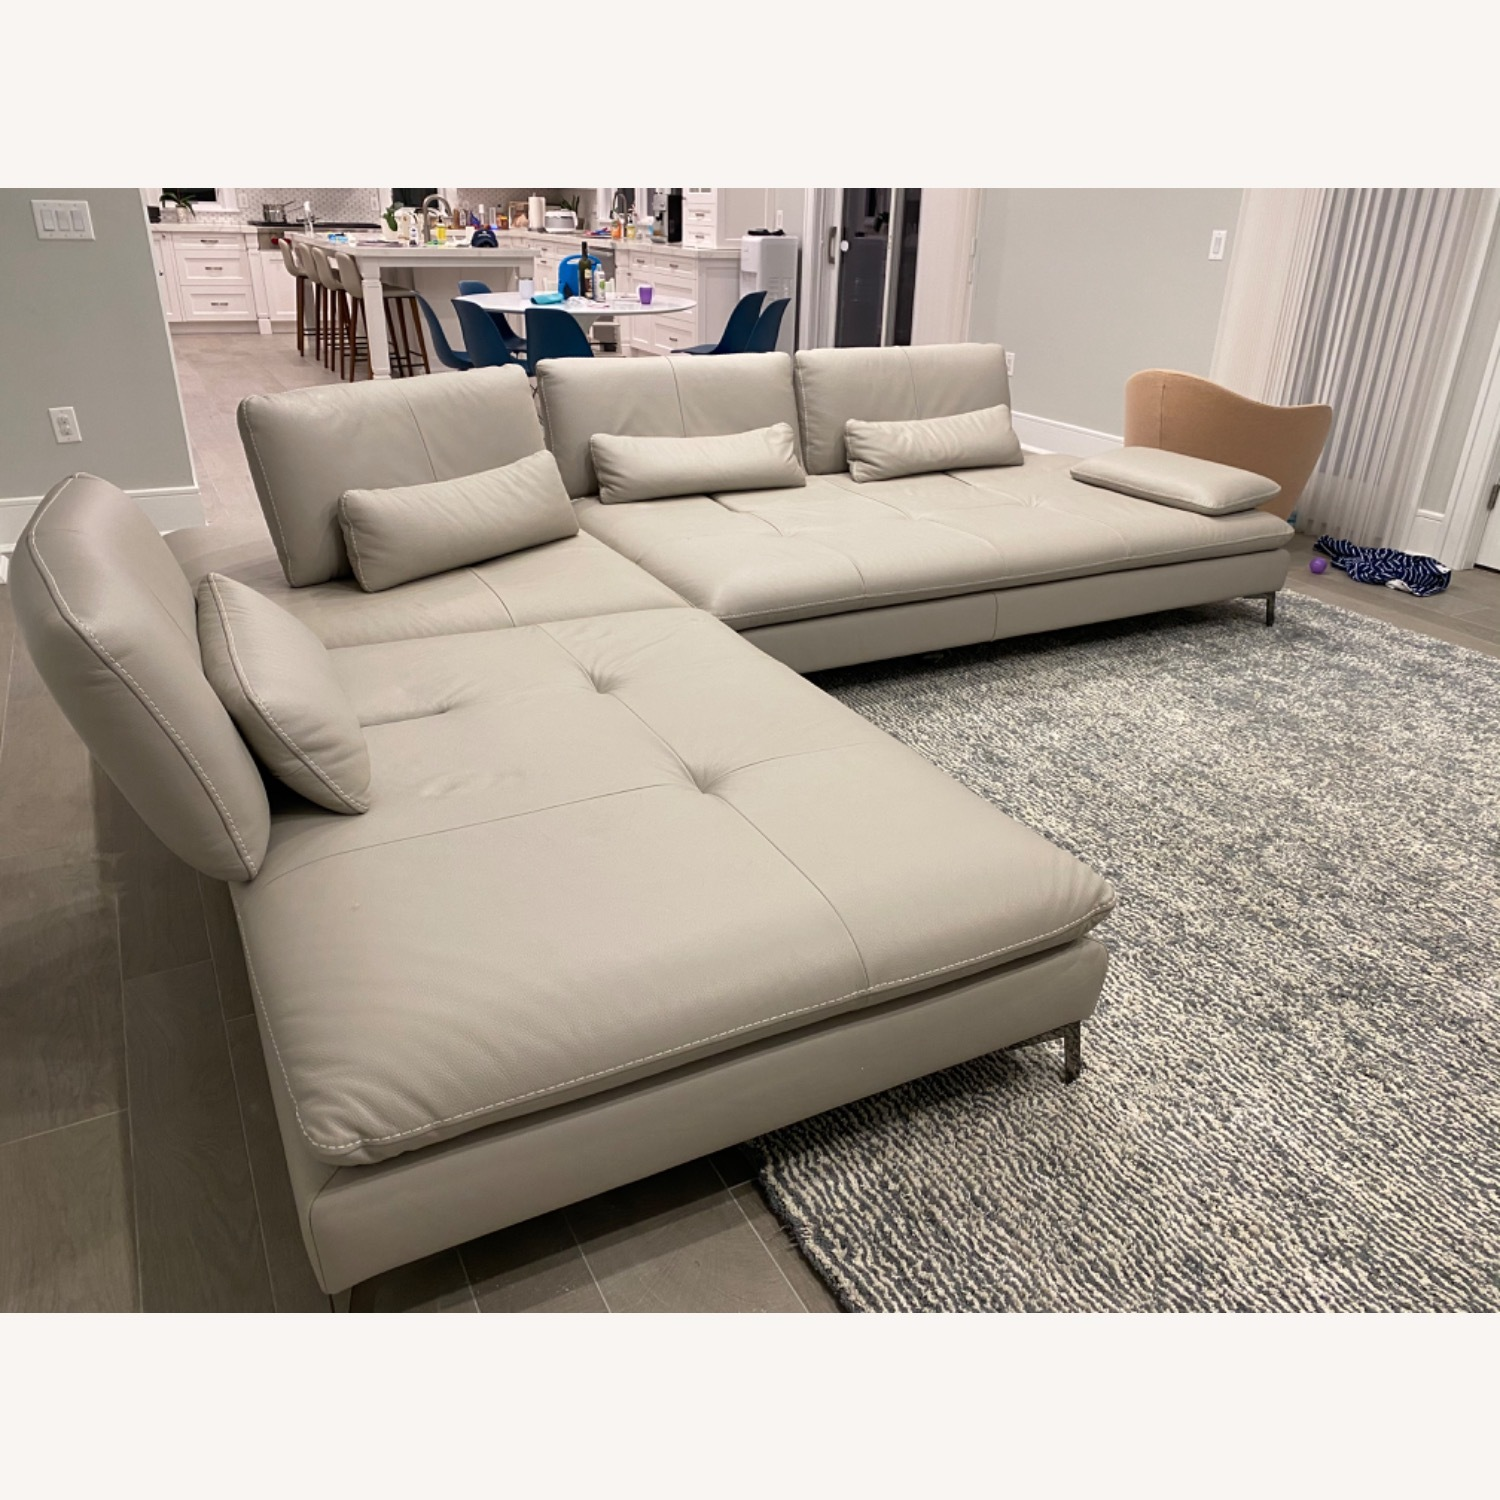 Roche Bobois Leather Sectional - image-1